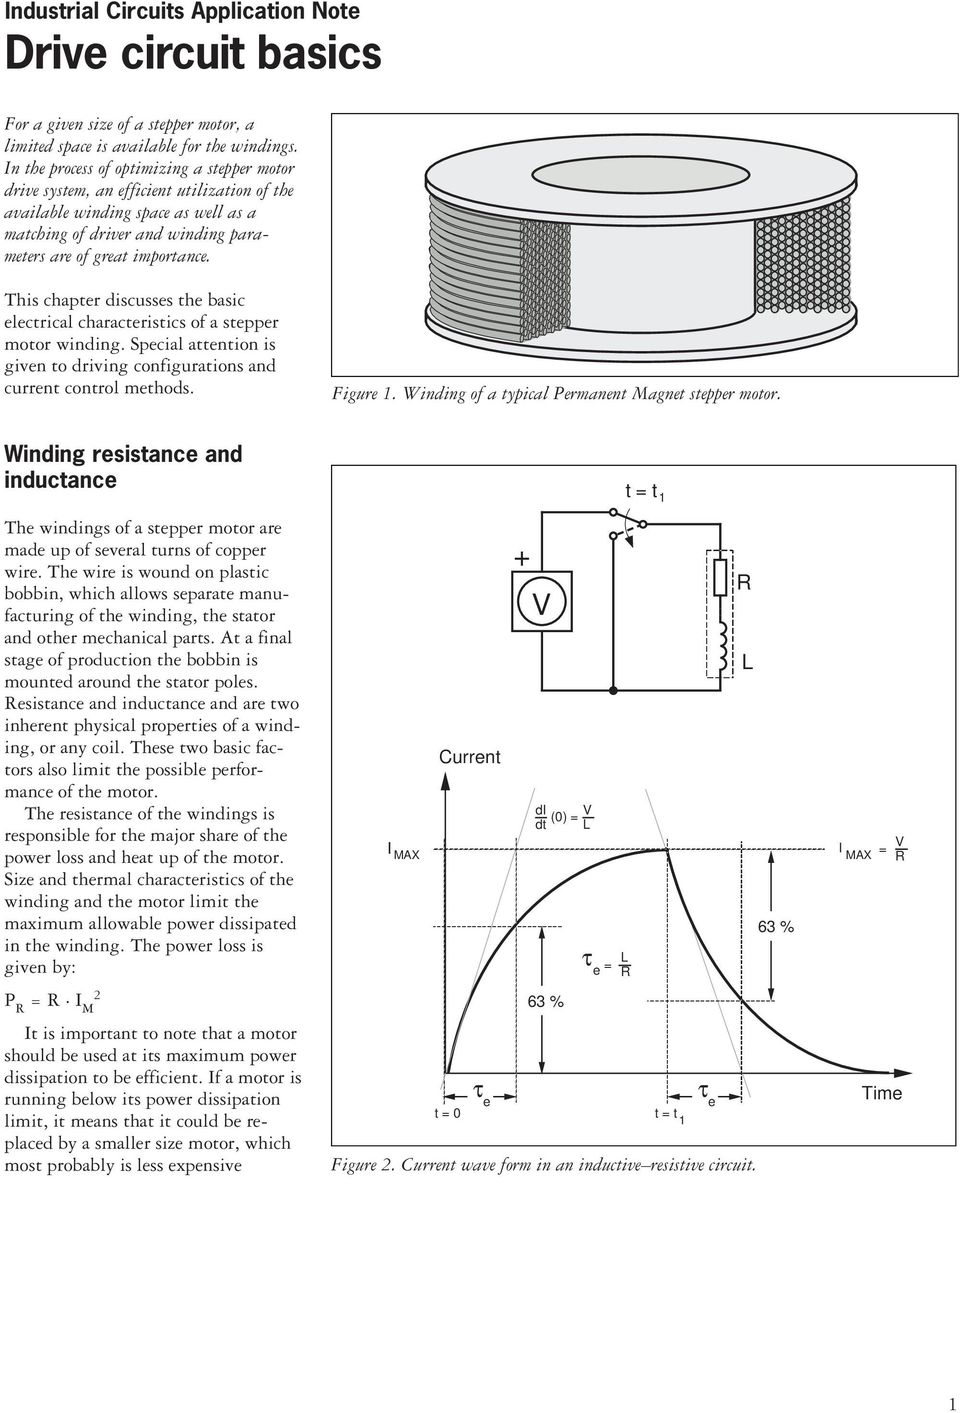 This chapter discusses the basic electrical characteristics of a stepper motor winding. Special attention is given to driving configurations and current control methods. Figure.